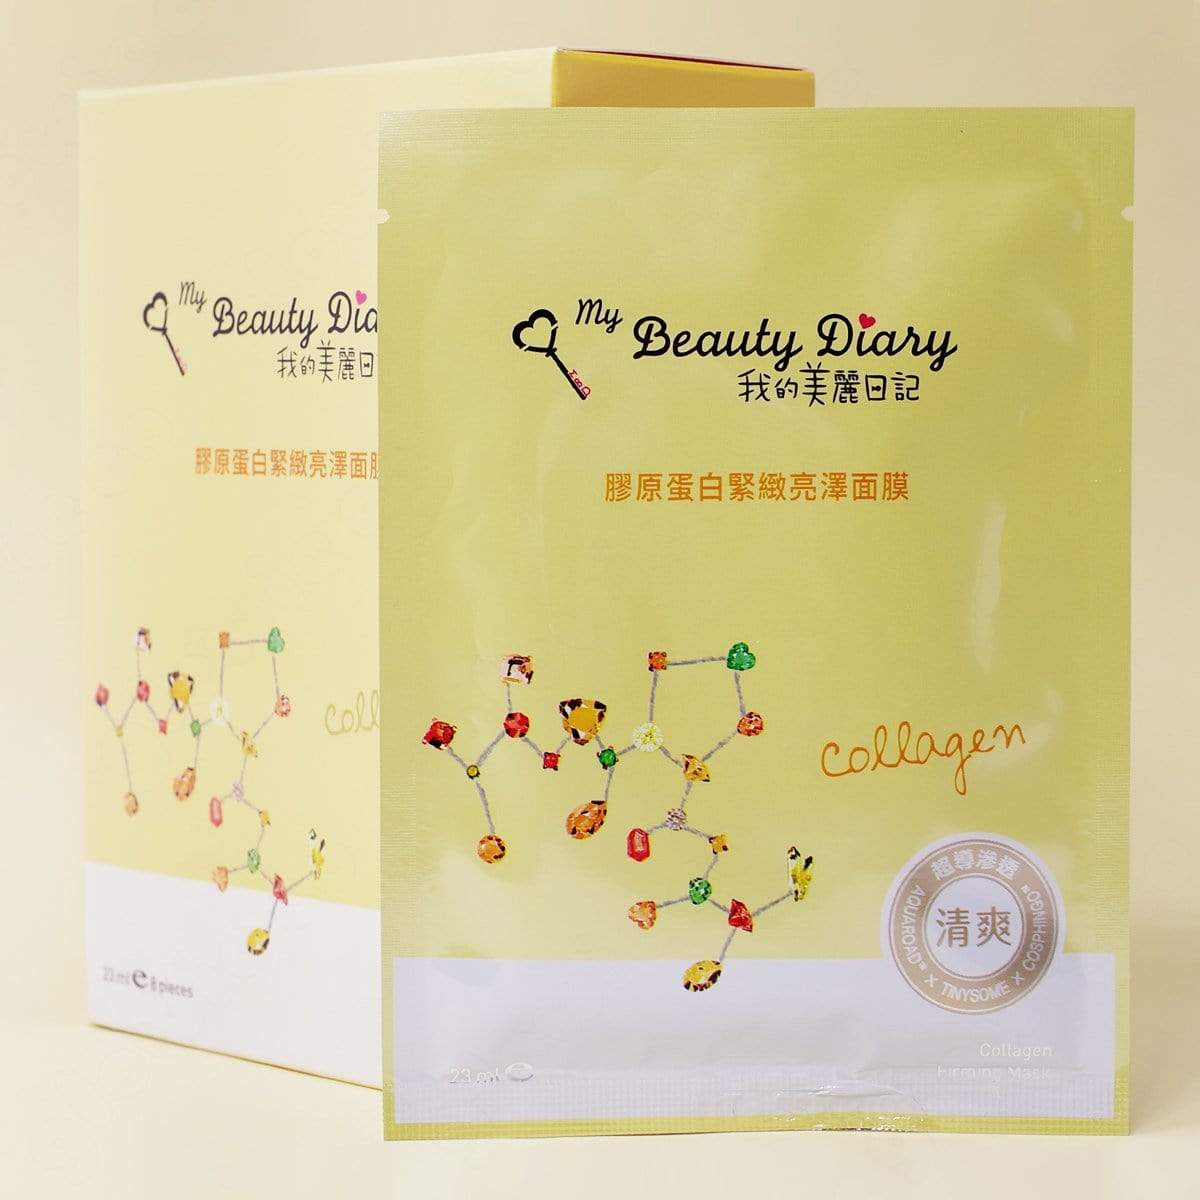 My Beauty Diary Collagen Firming Sheet Mask